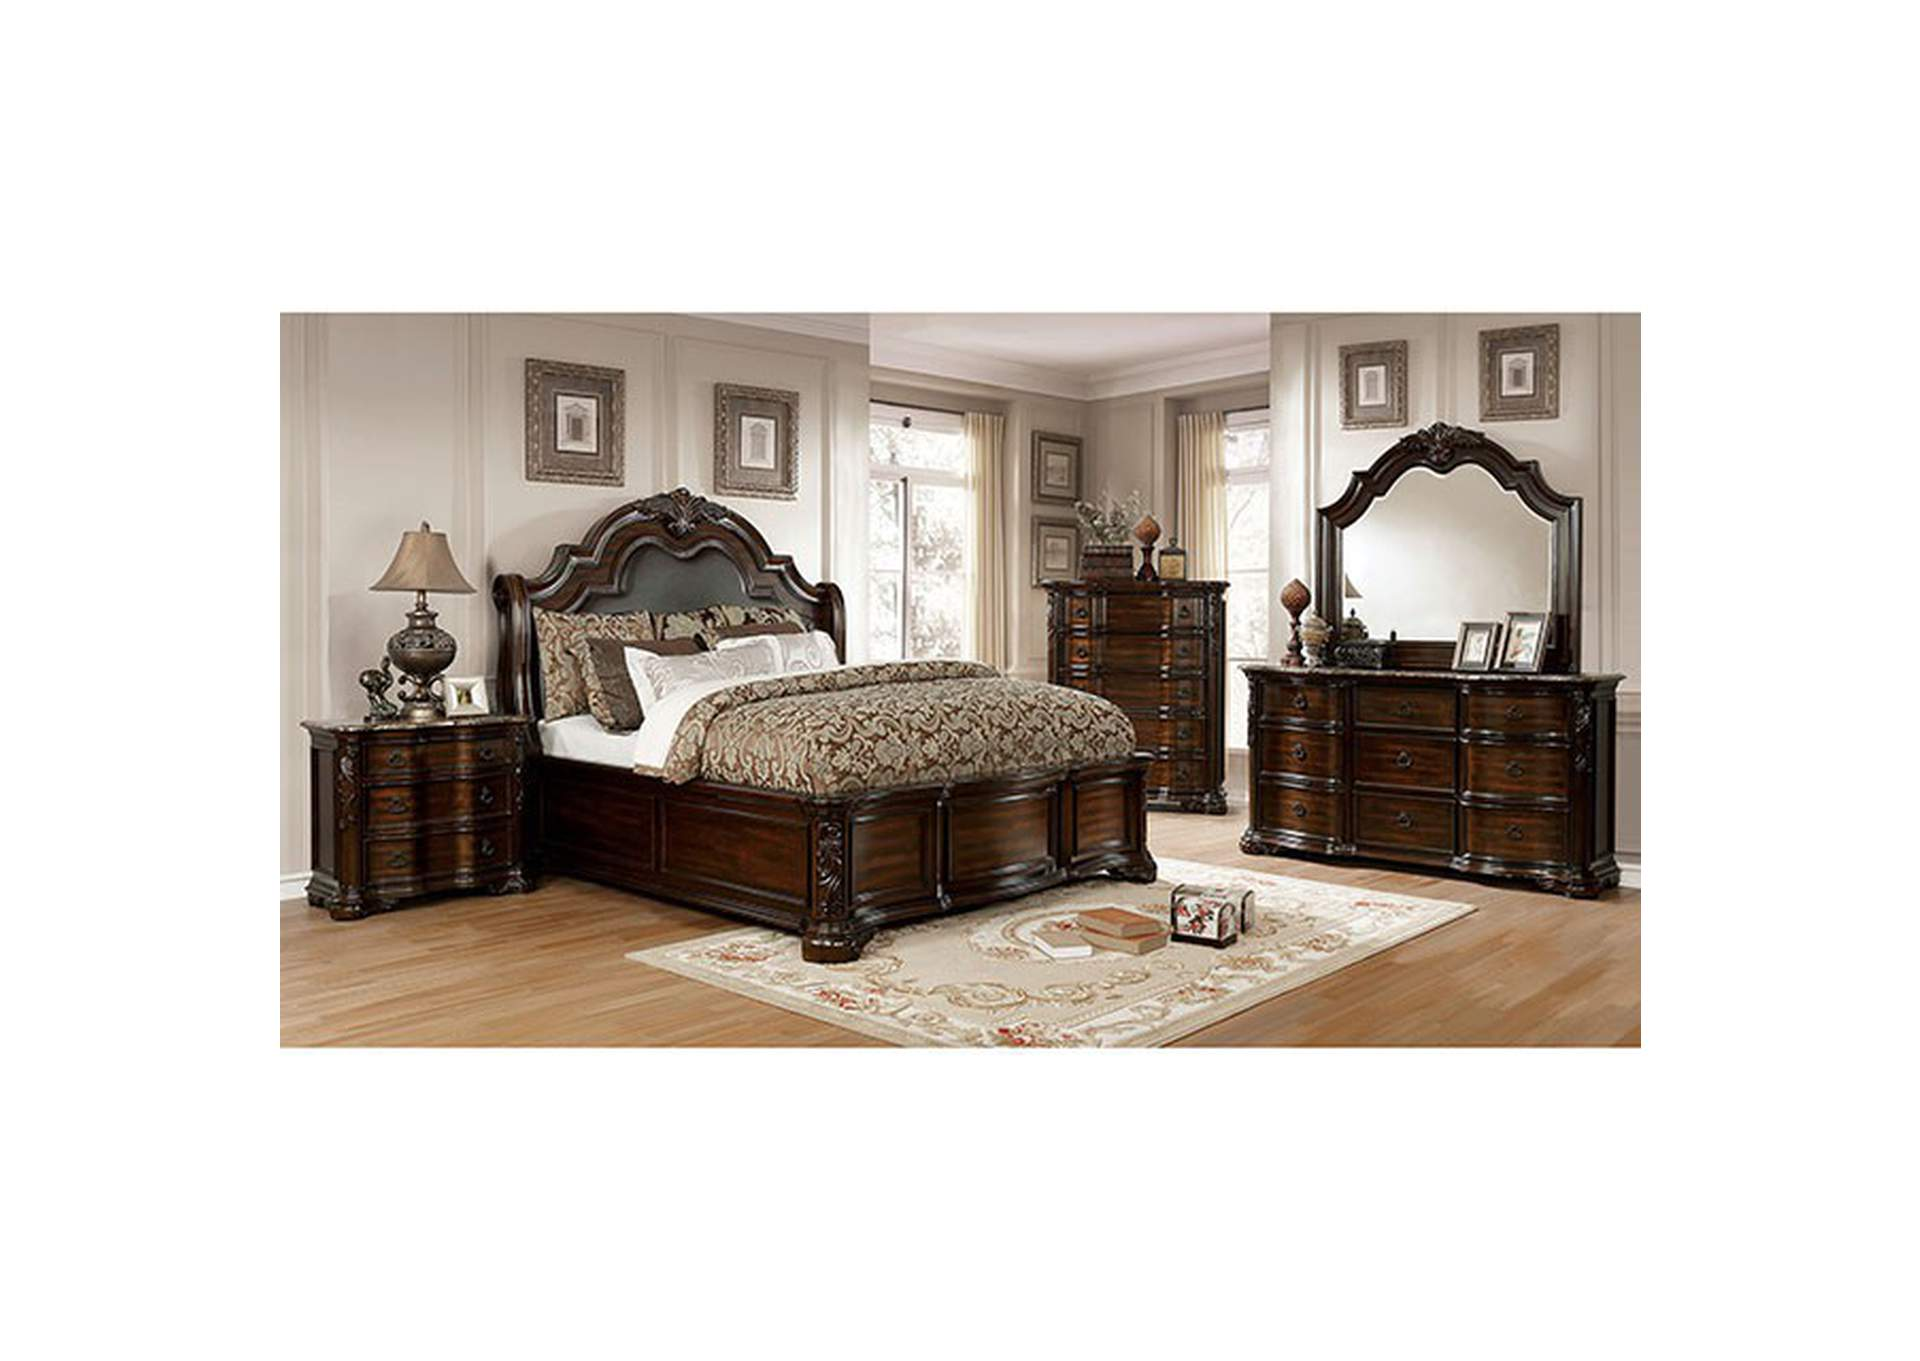 Niketas Brown Upholstered California King Platform Bed,Furniture of America